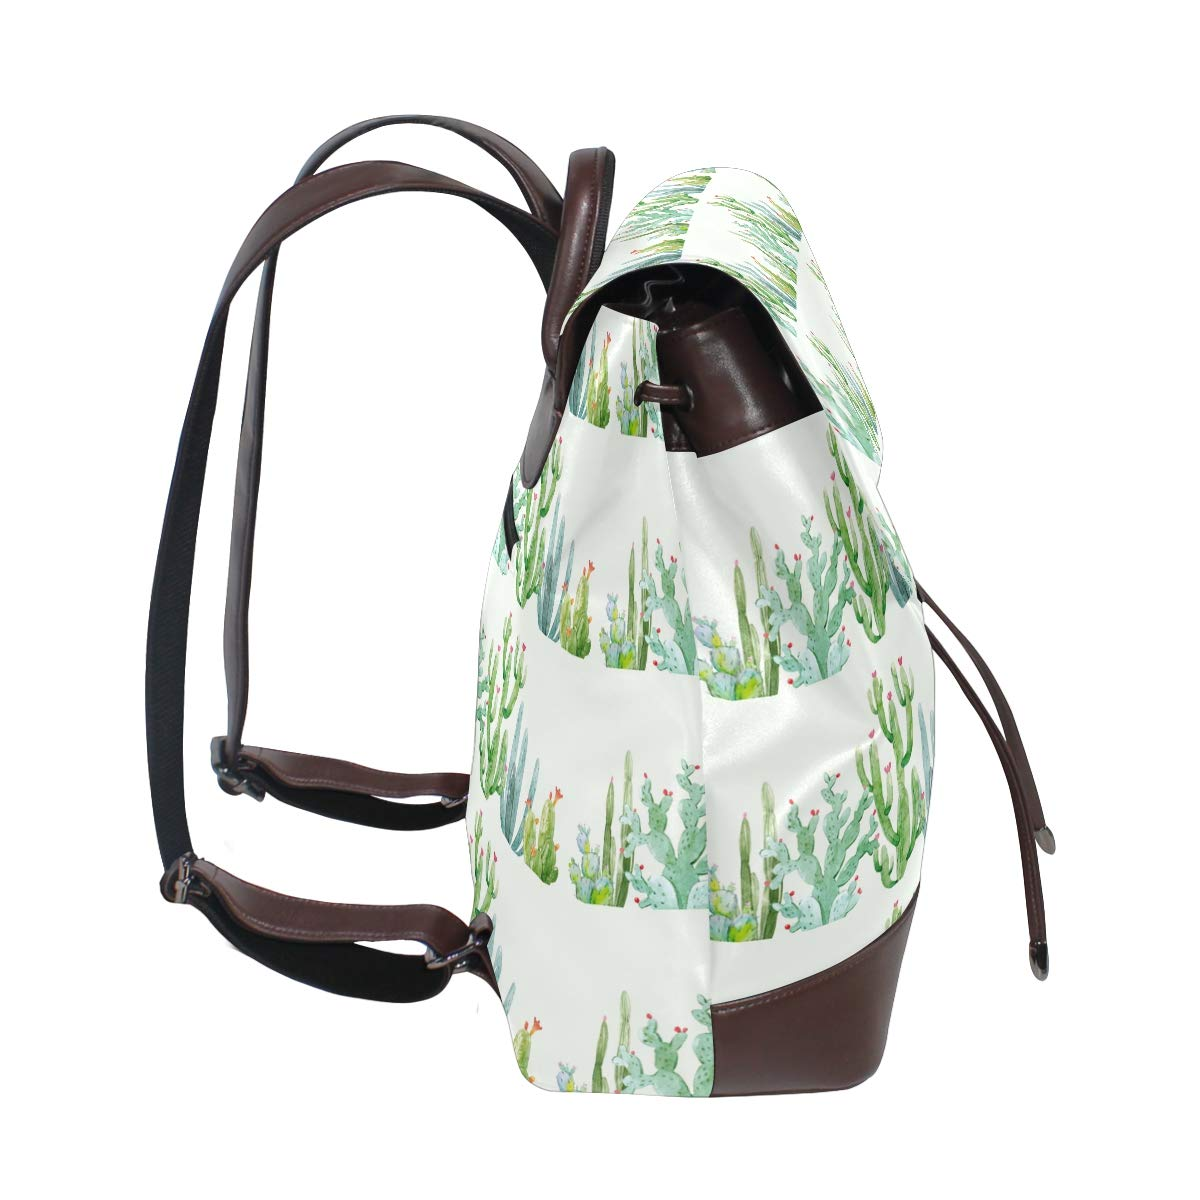 Leather Watercolor Cactus Composition Backpack Daypack Bag Women